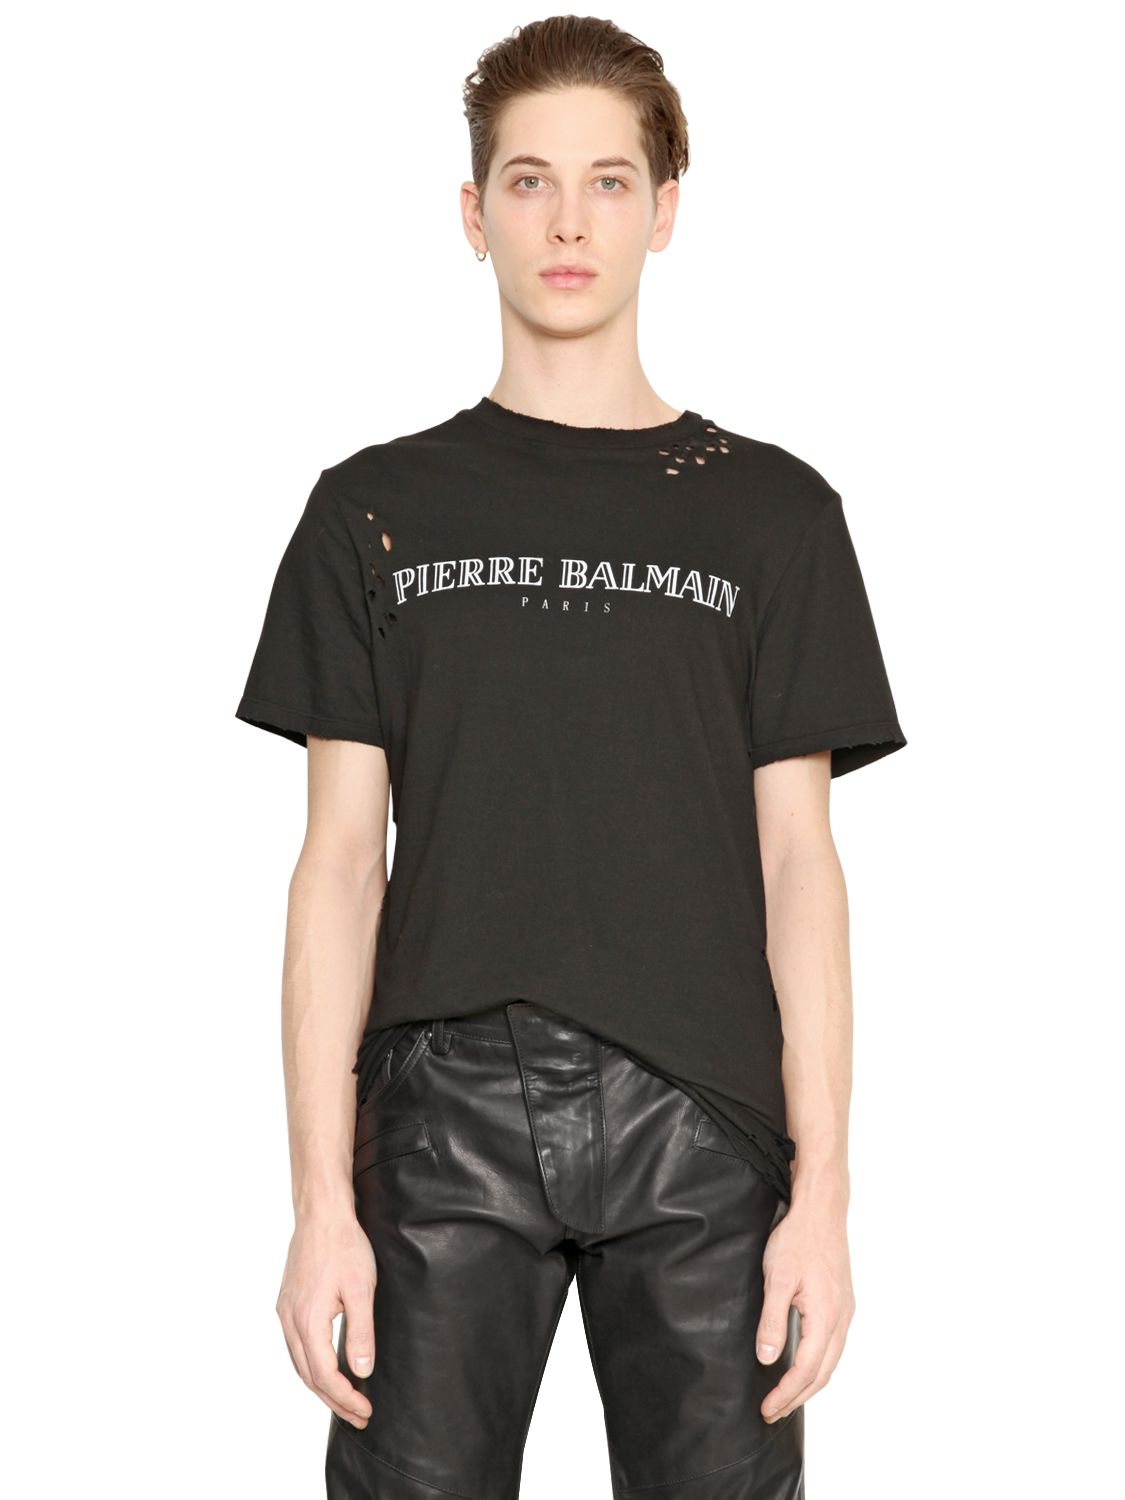 a3ddf3f7cc5b Lyst - Balmain Logo Printed Cotton Jersey T-Shirt in Black for Men